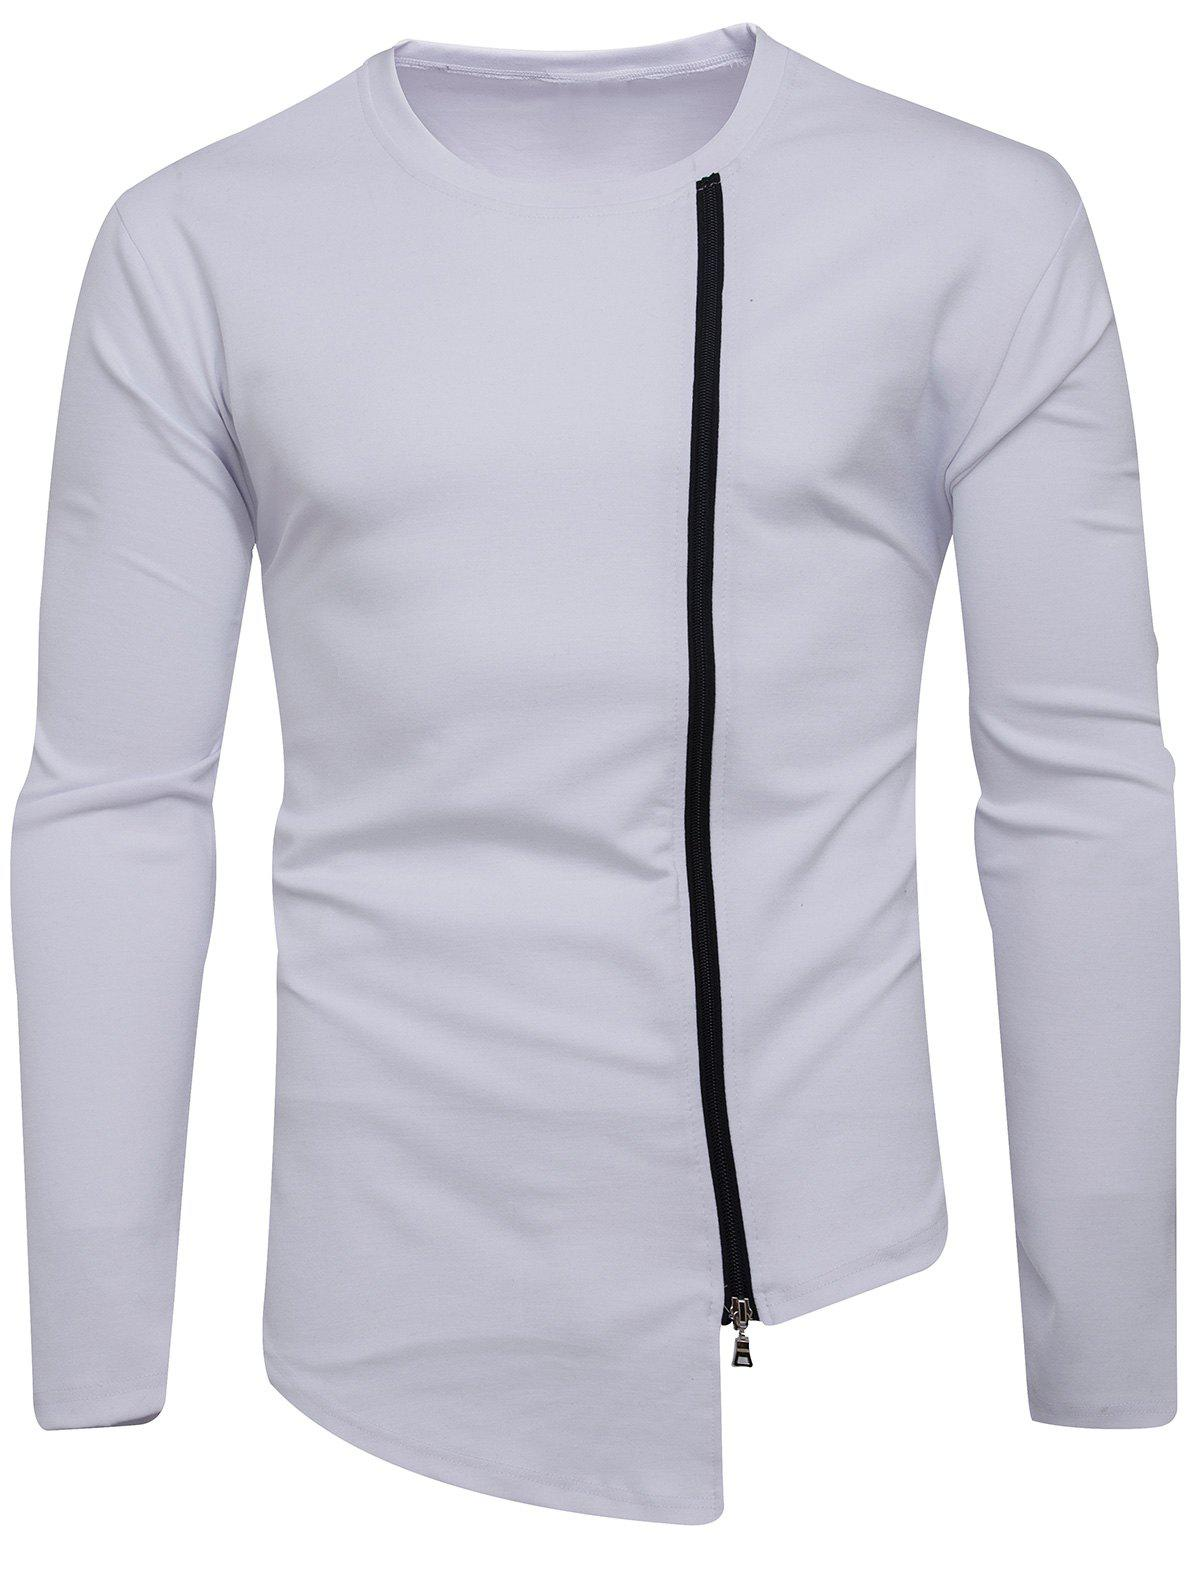 Long Sleeve Oblique Zip Up Asymmetric T-shirt - WHITE L